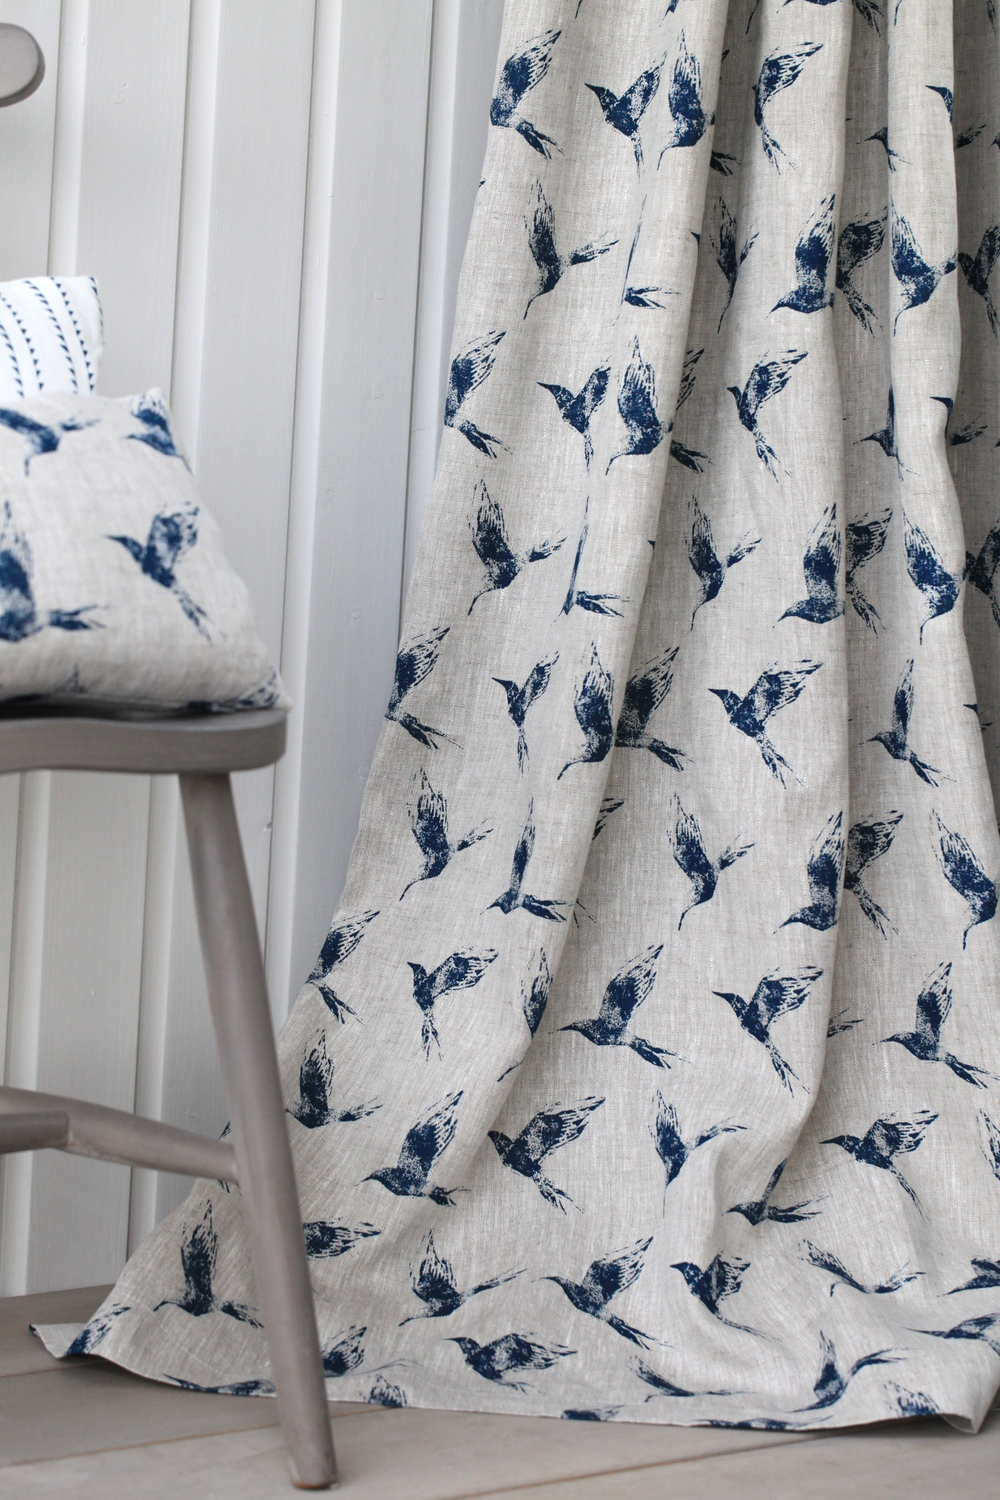 BOLLIN BIRD INKY SKY CURTAIN